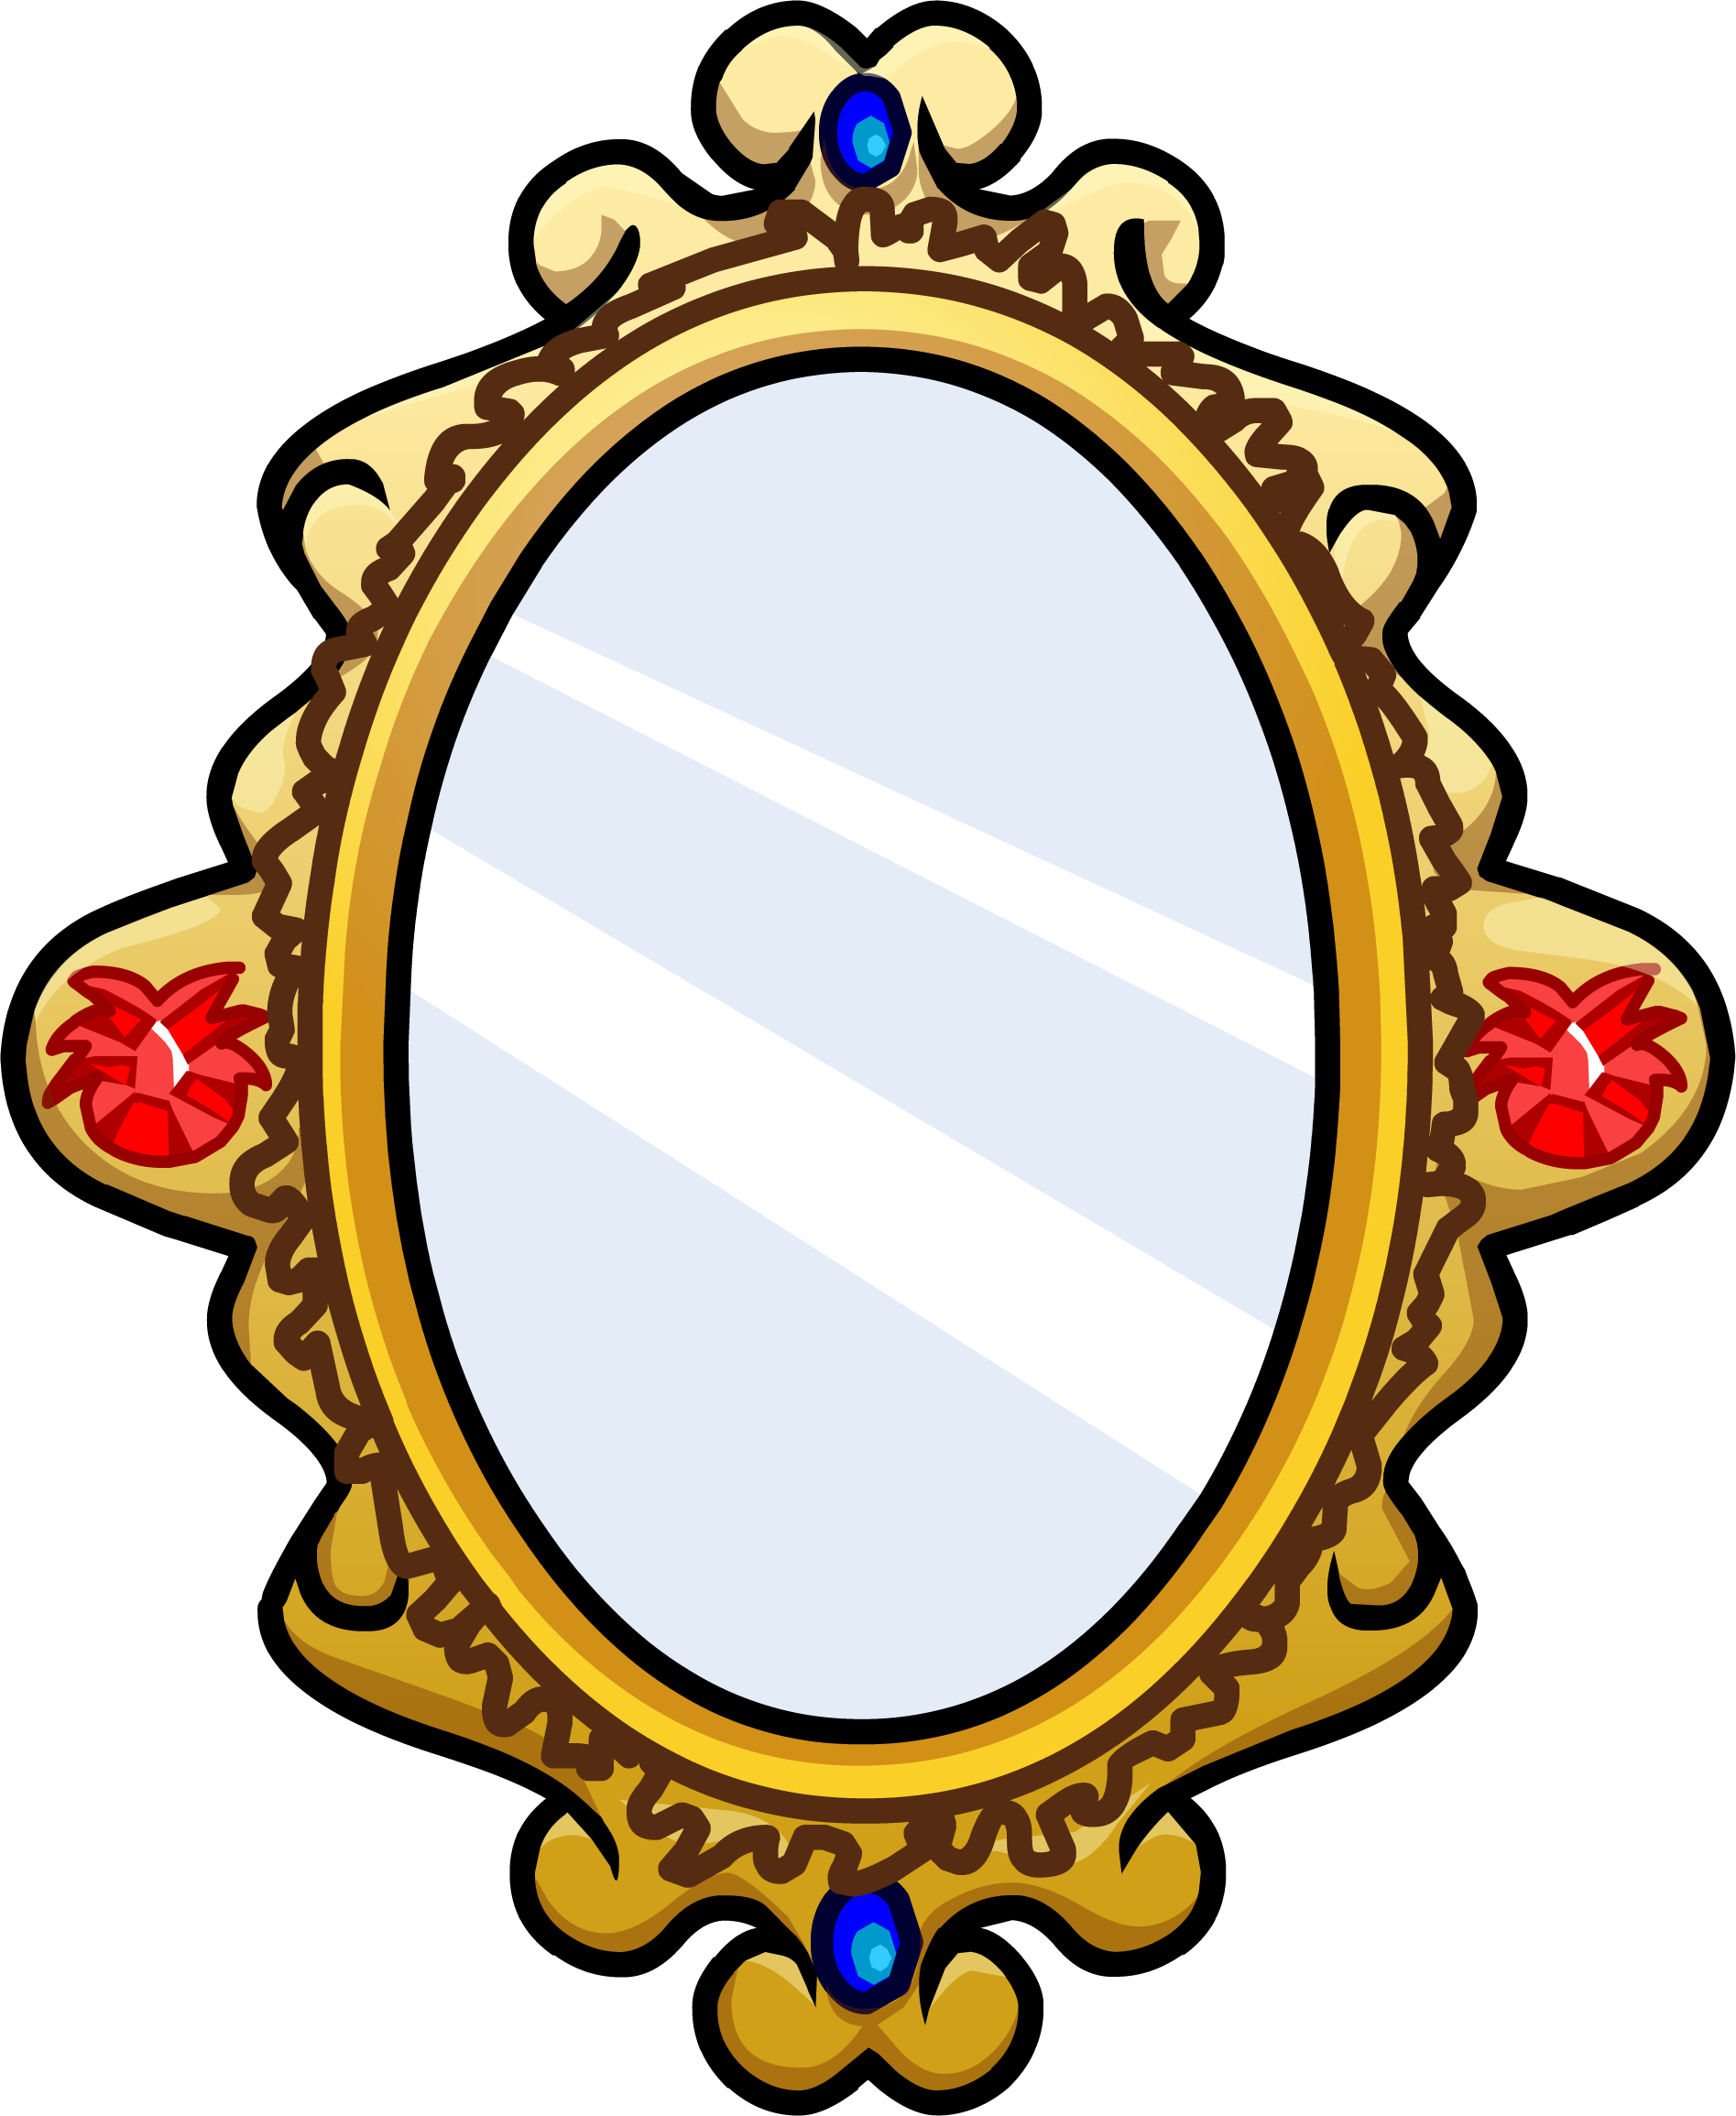 Snow white mirror png. Collection of clipart